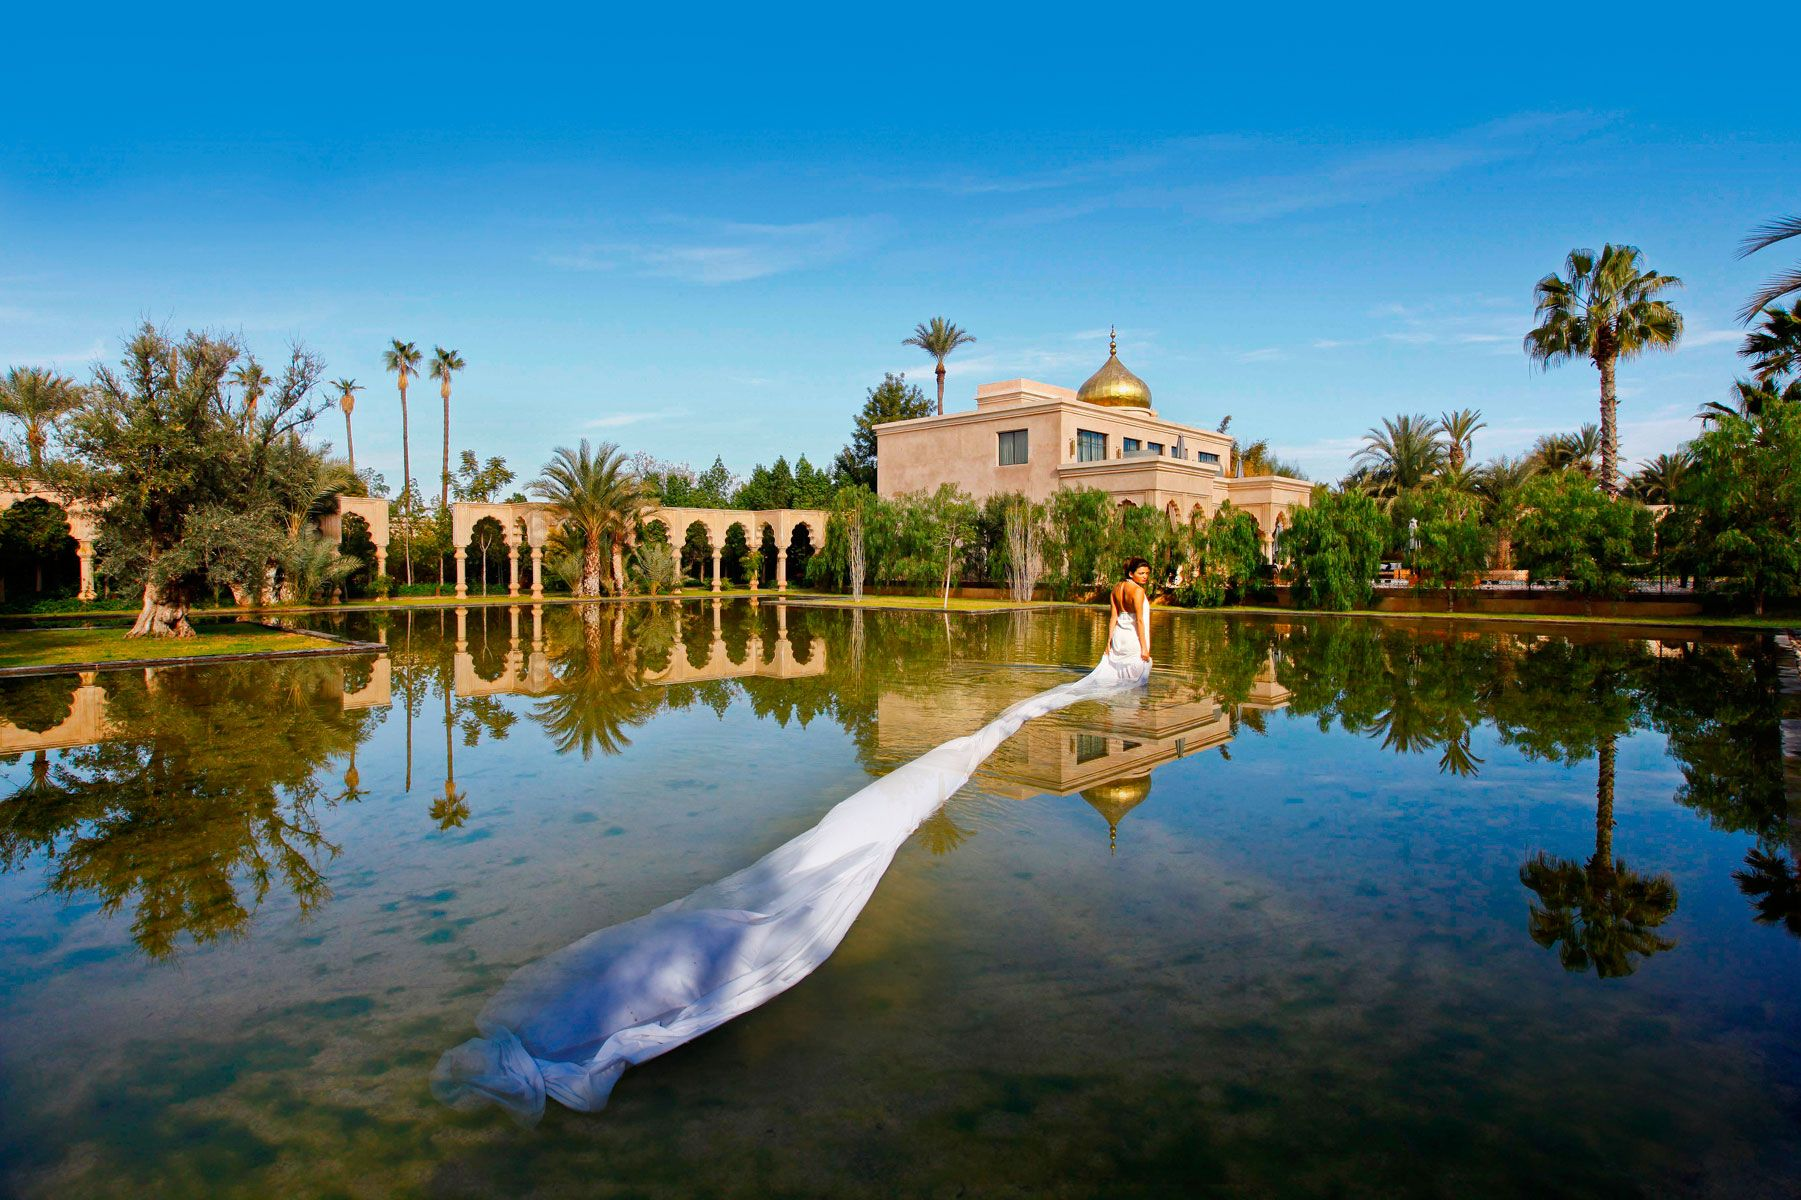 Palais namaskar marrakech boutique hotel romantique for Leading small hotels